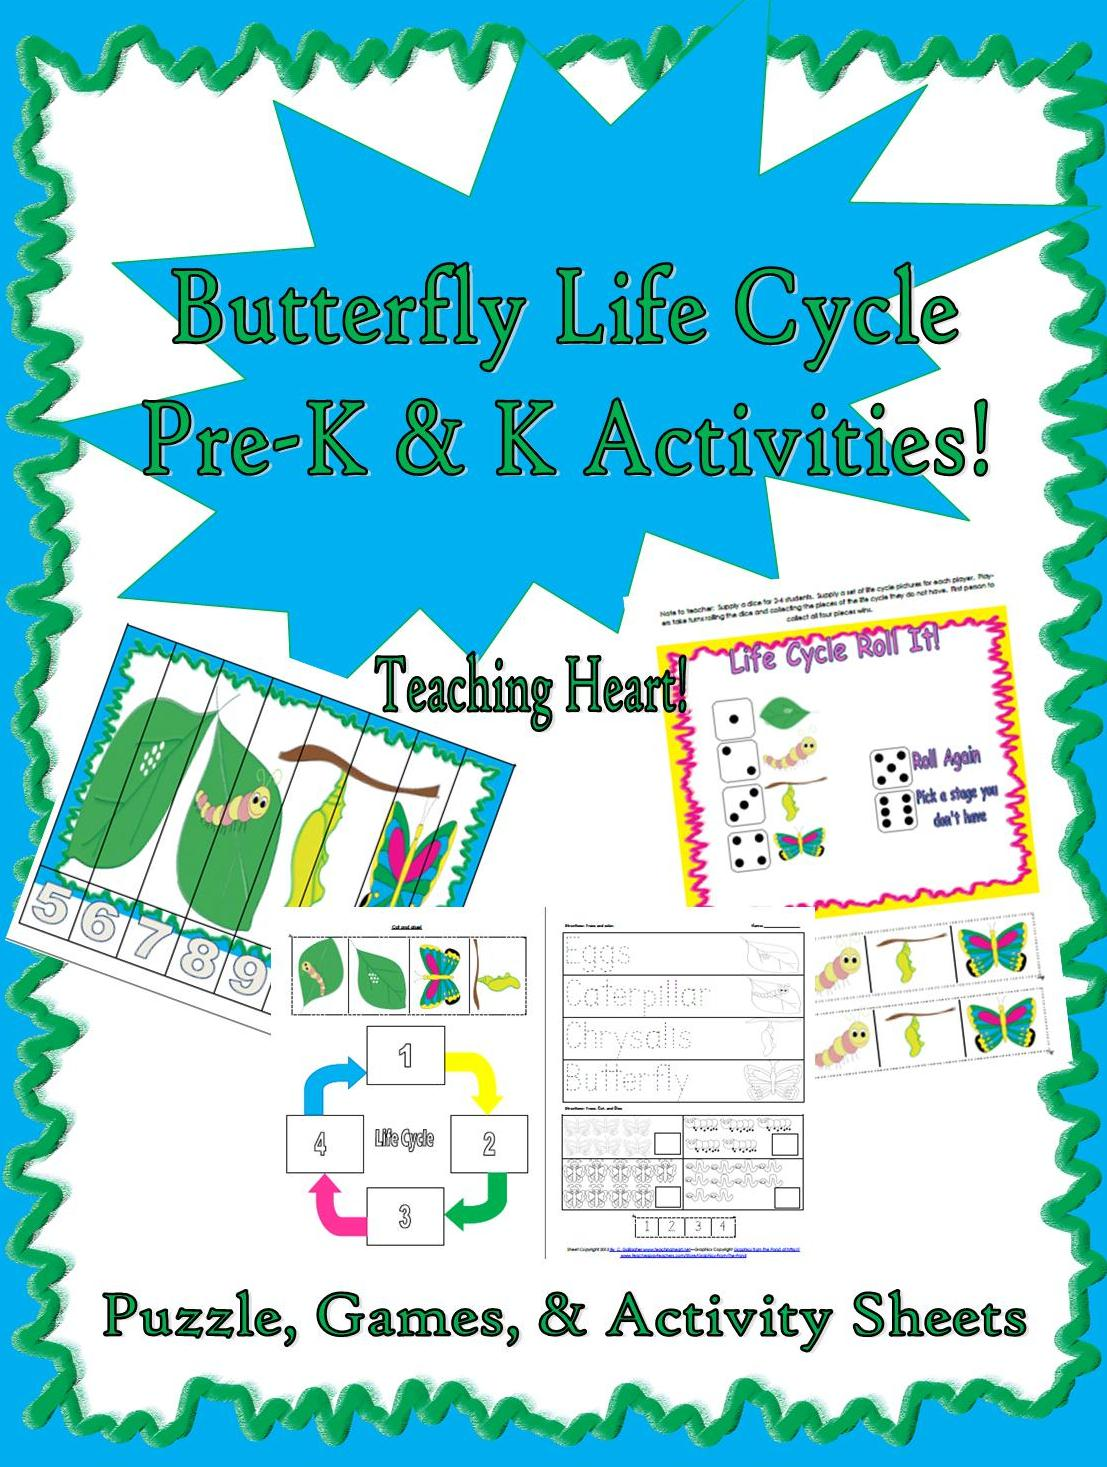 The Very Hungry Caterpillar Unit K 3 Lessons Links